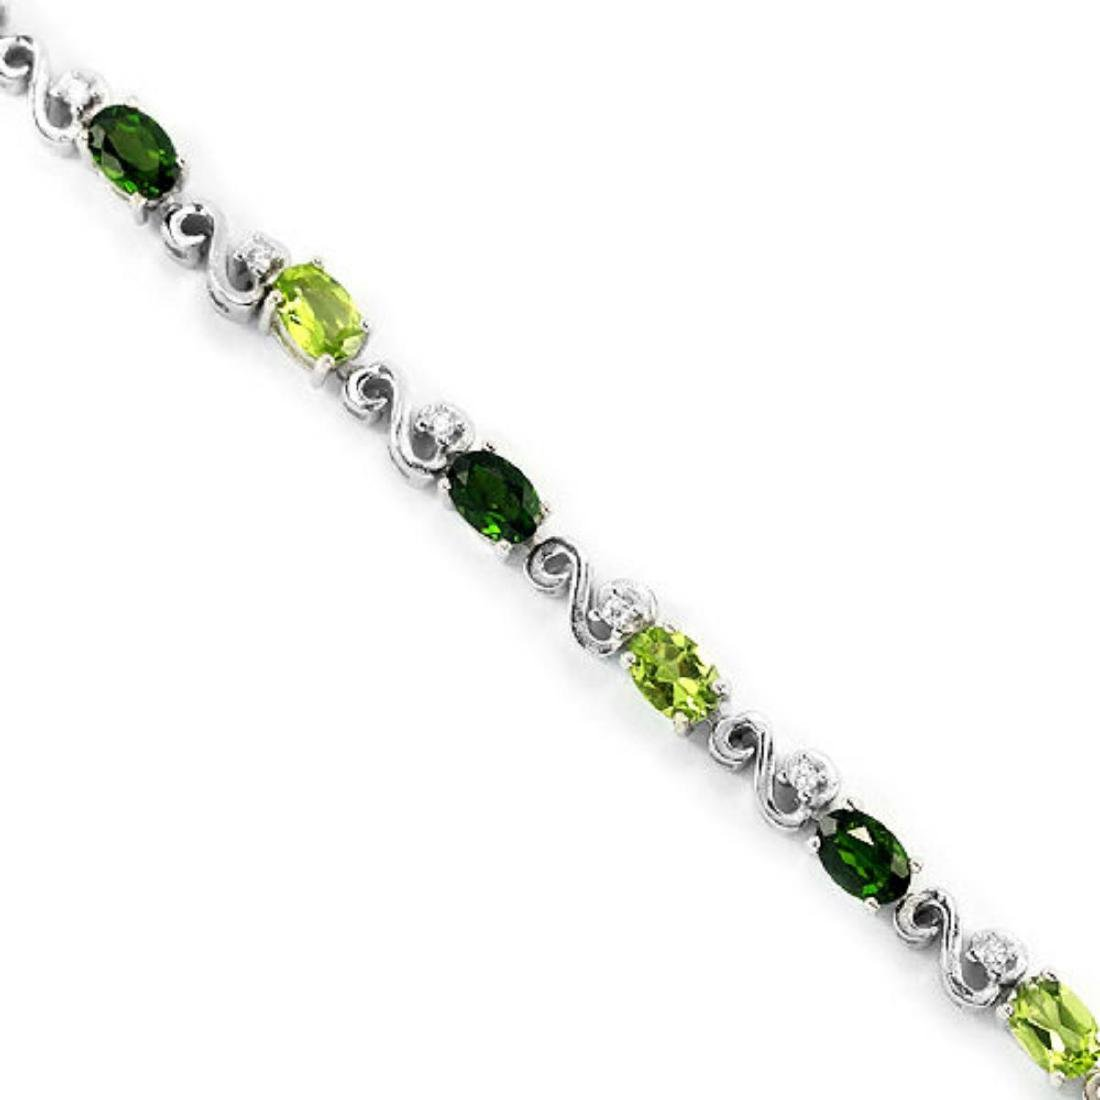 NATURAL  GREEN CHROME DIOPSIDE PERIDOT BRACELET - 2